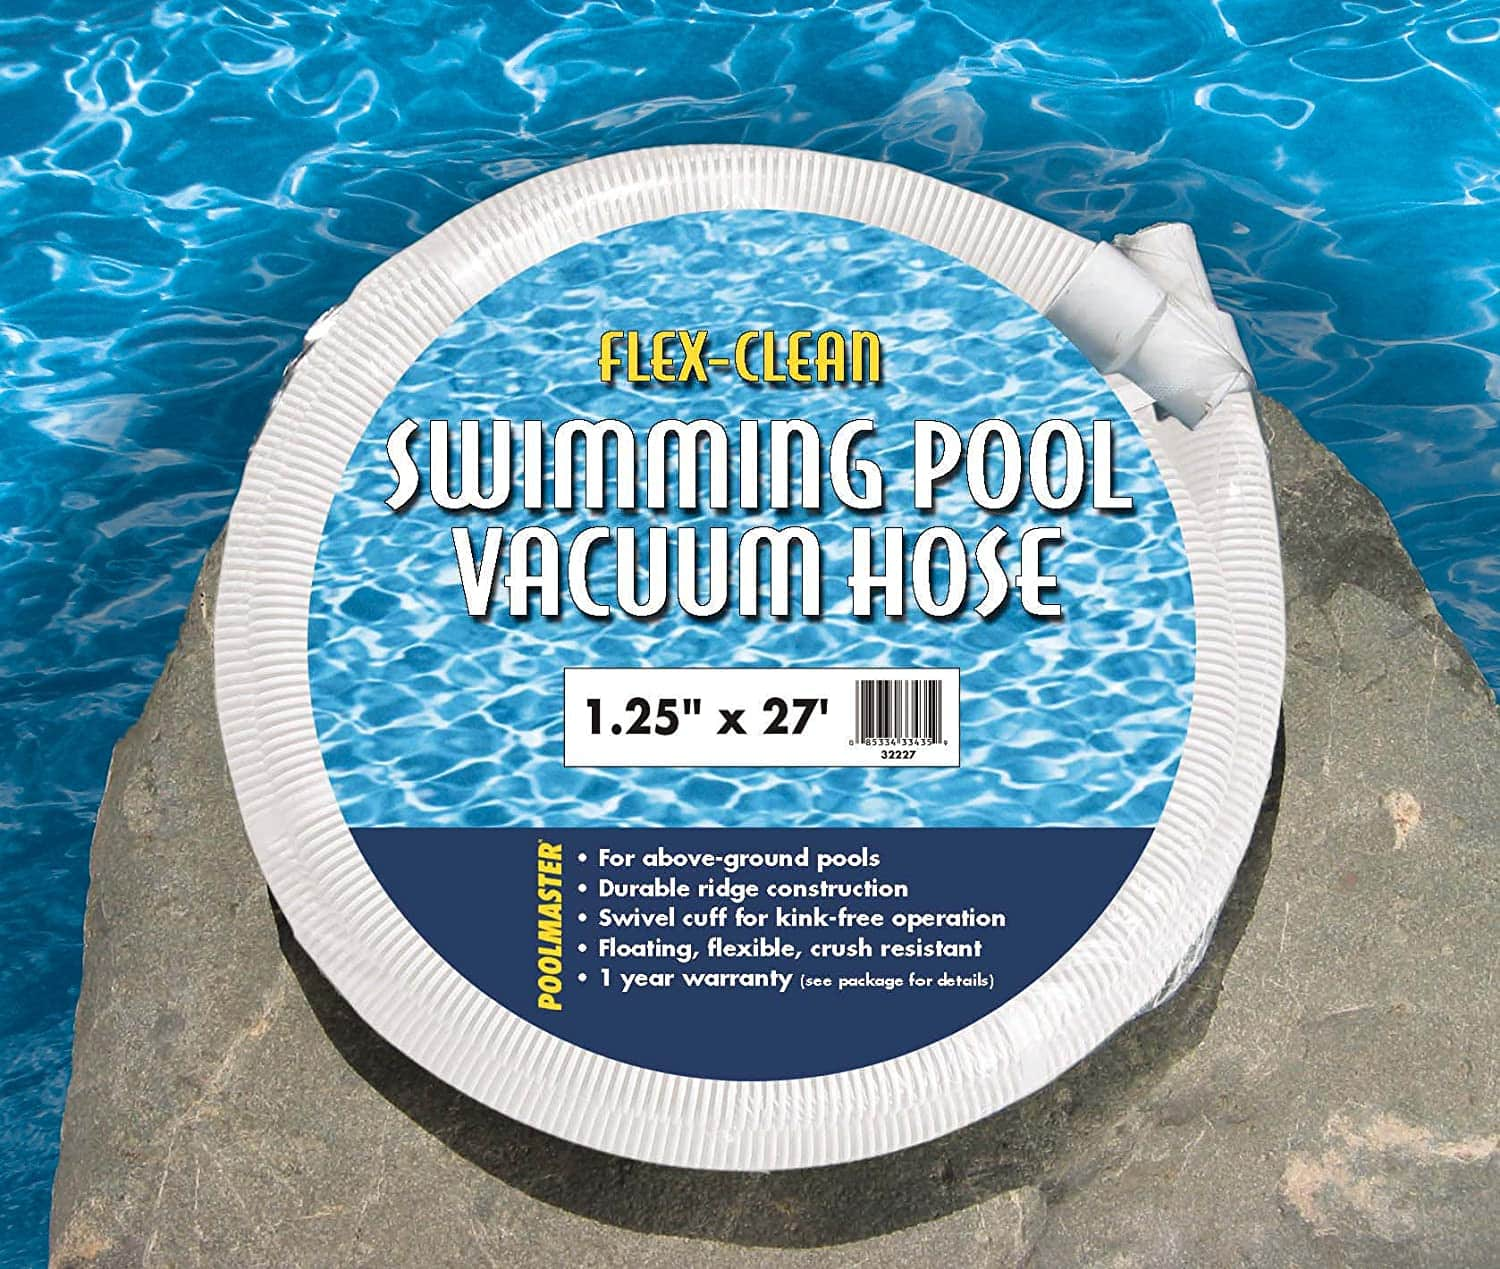 Poolmaster 32227 Pool Vacuum Hose